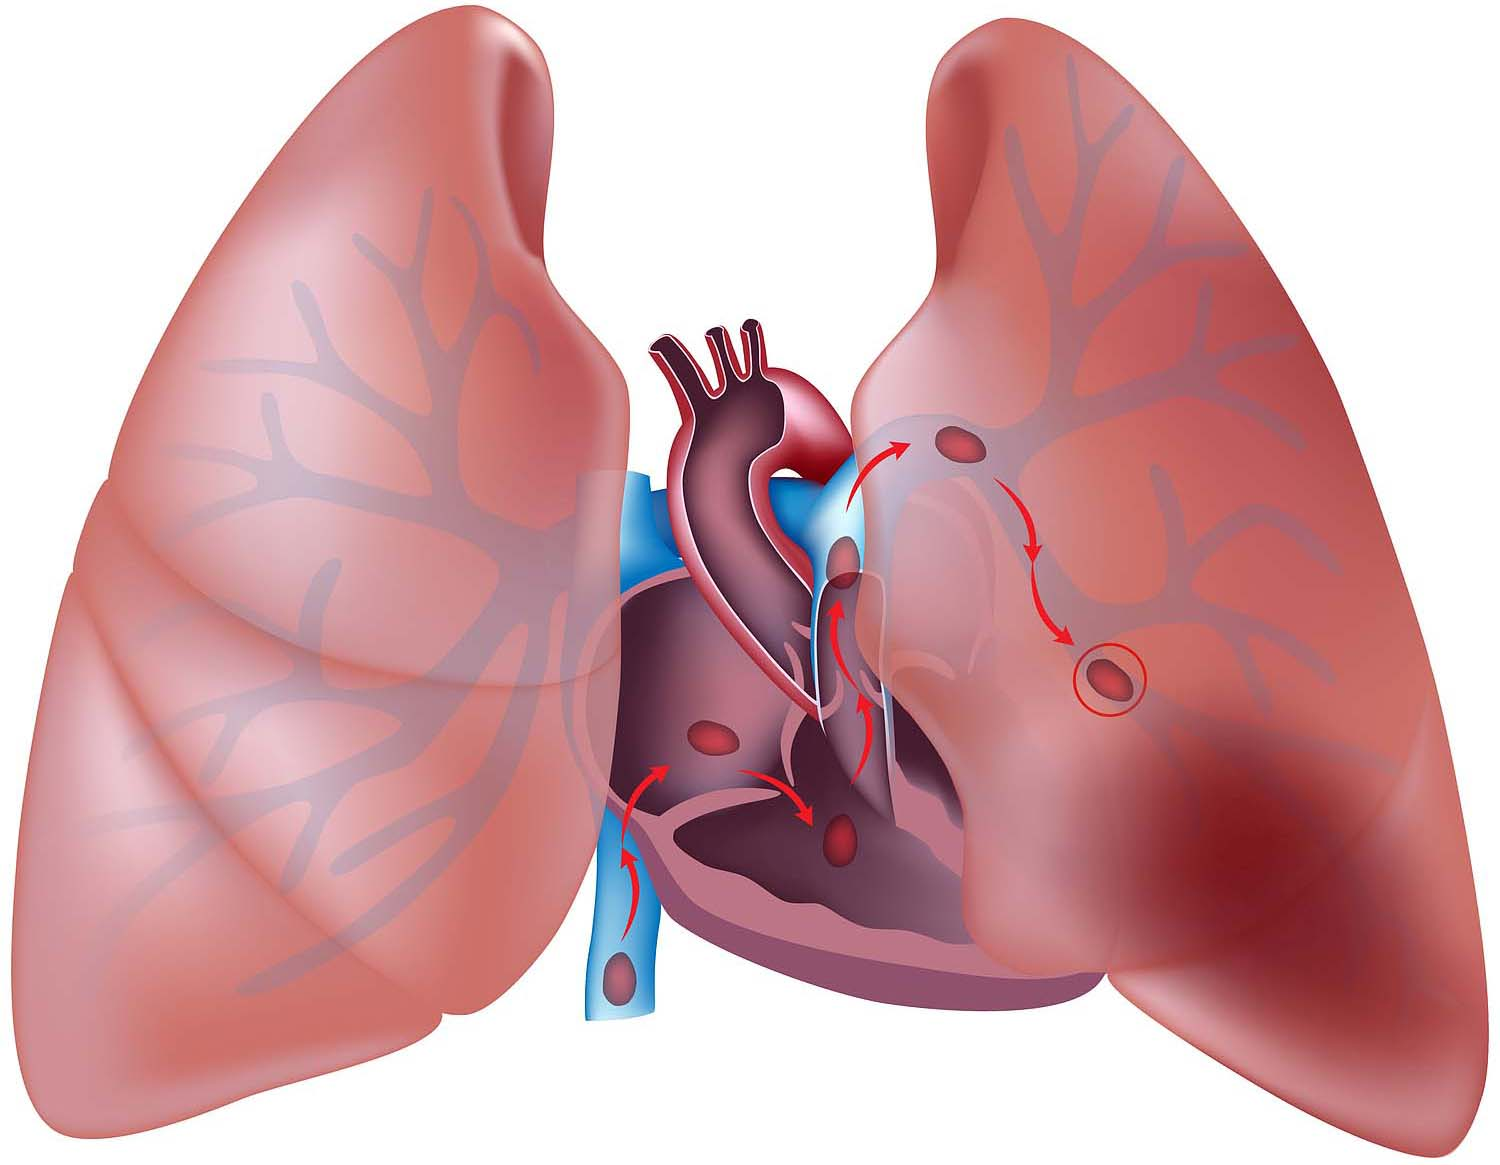 Lungs clipart pulmonary embolism. Nuvaring increased risks causes